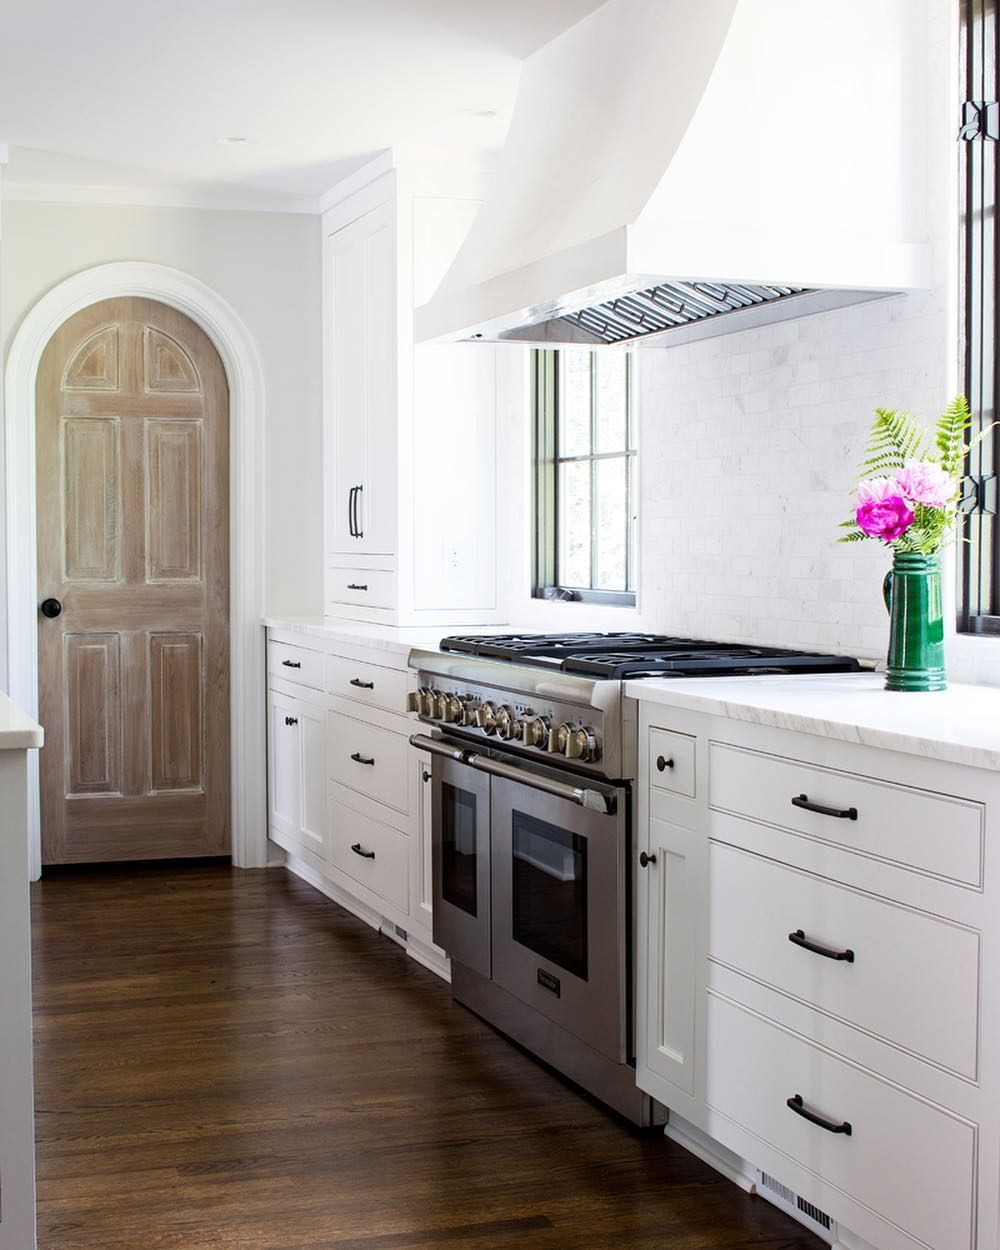 Natural wood pantry door in white kitchen k i t c h e n